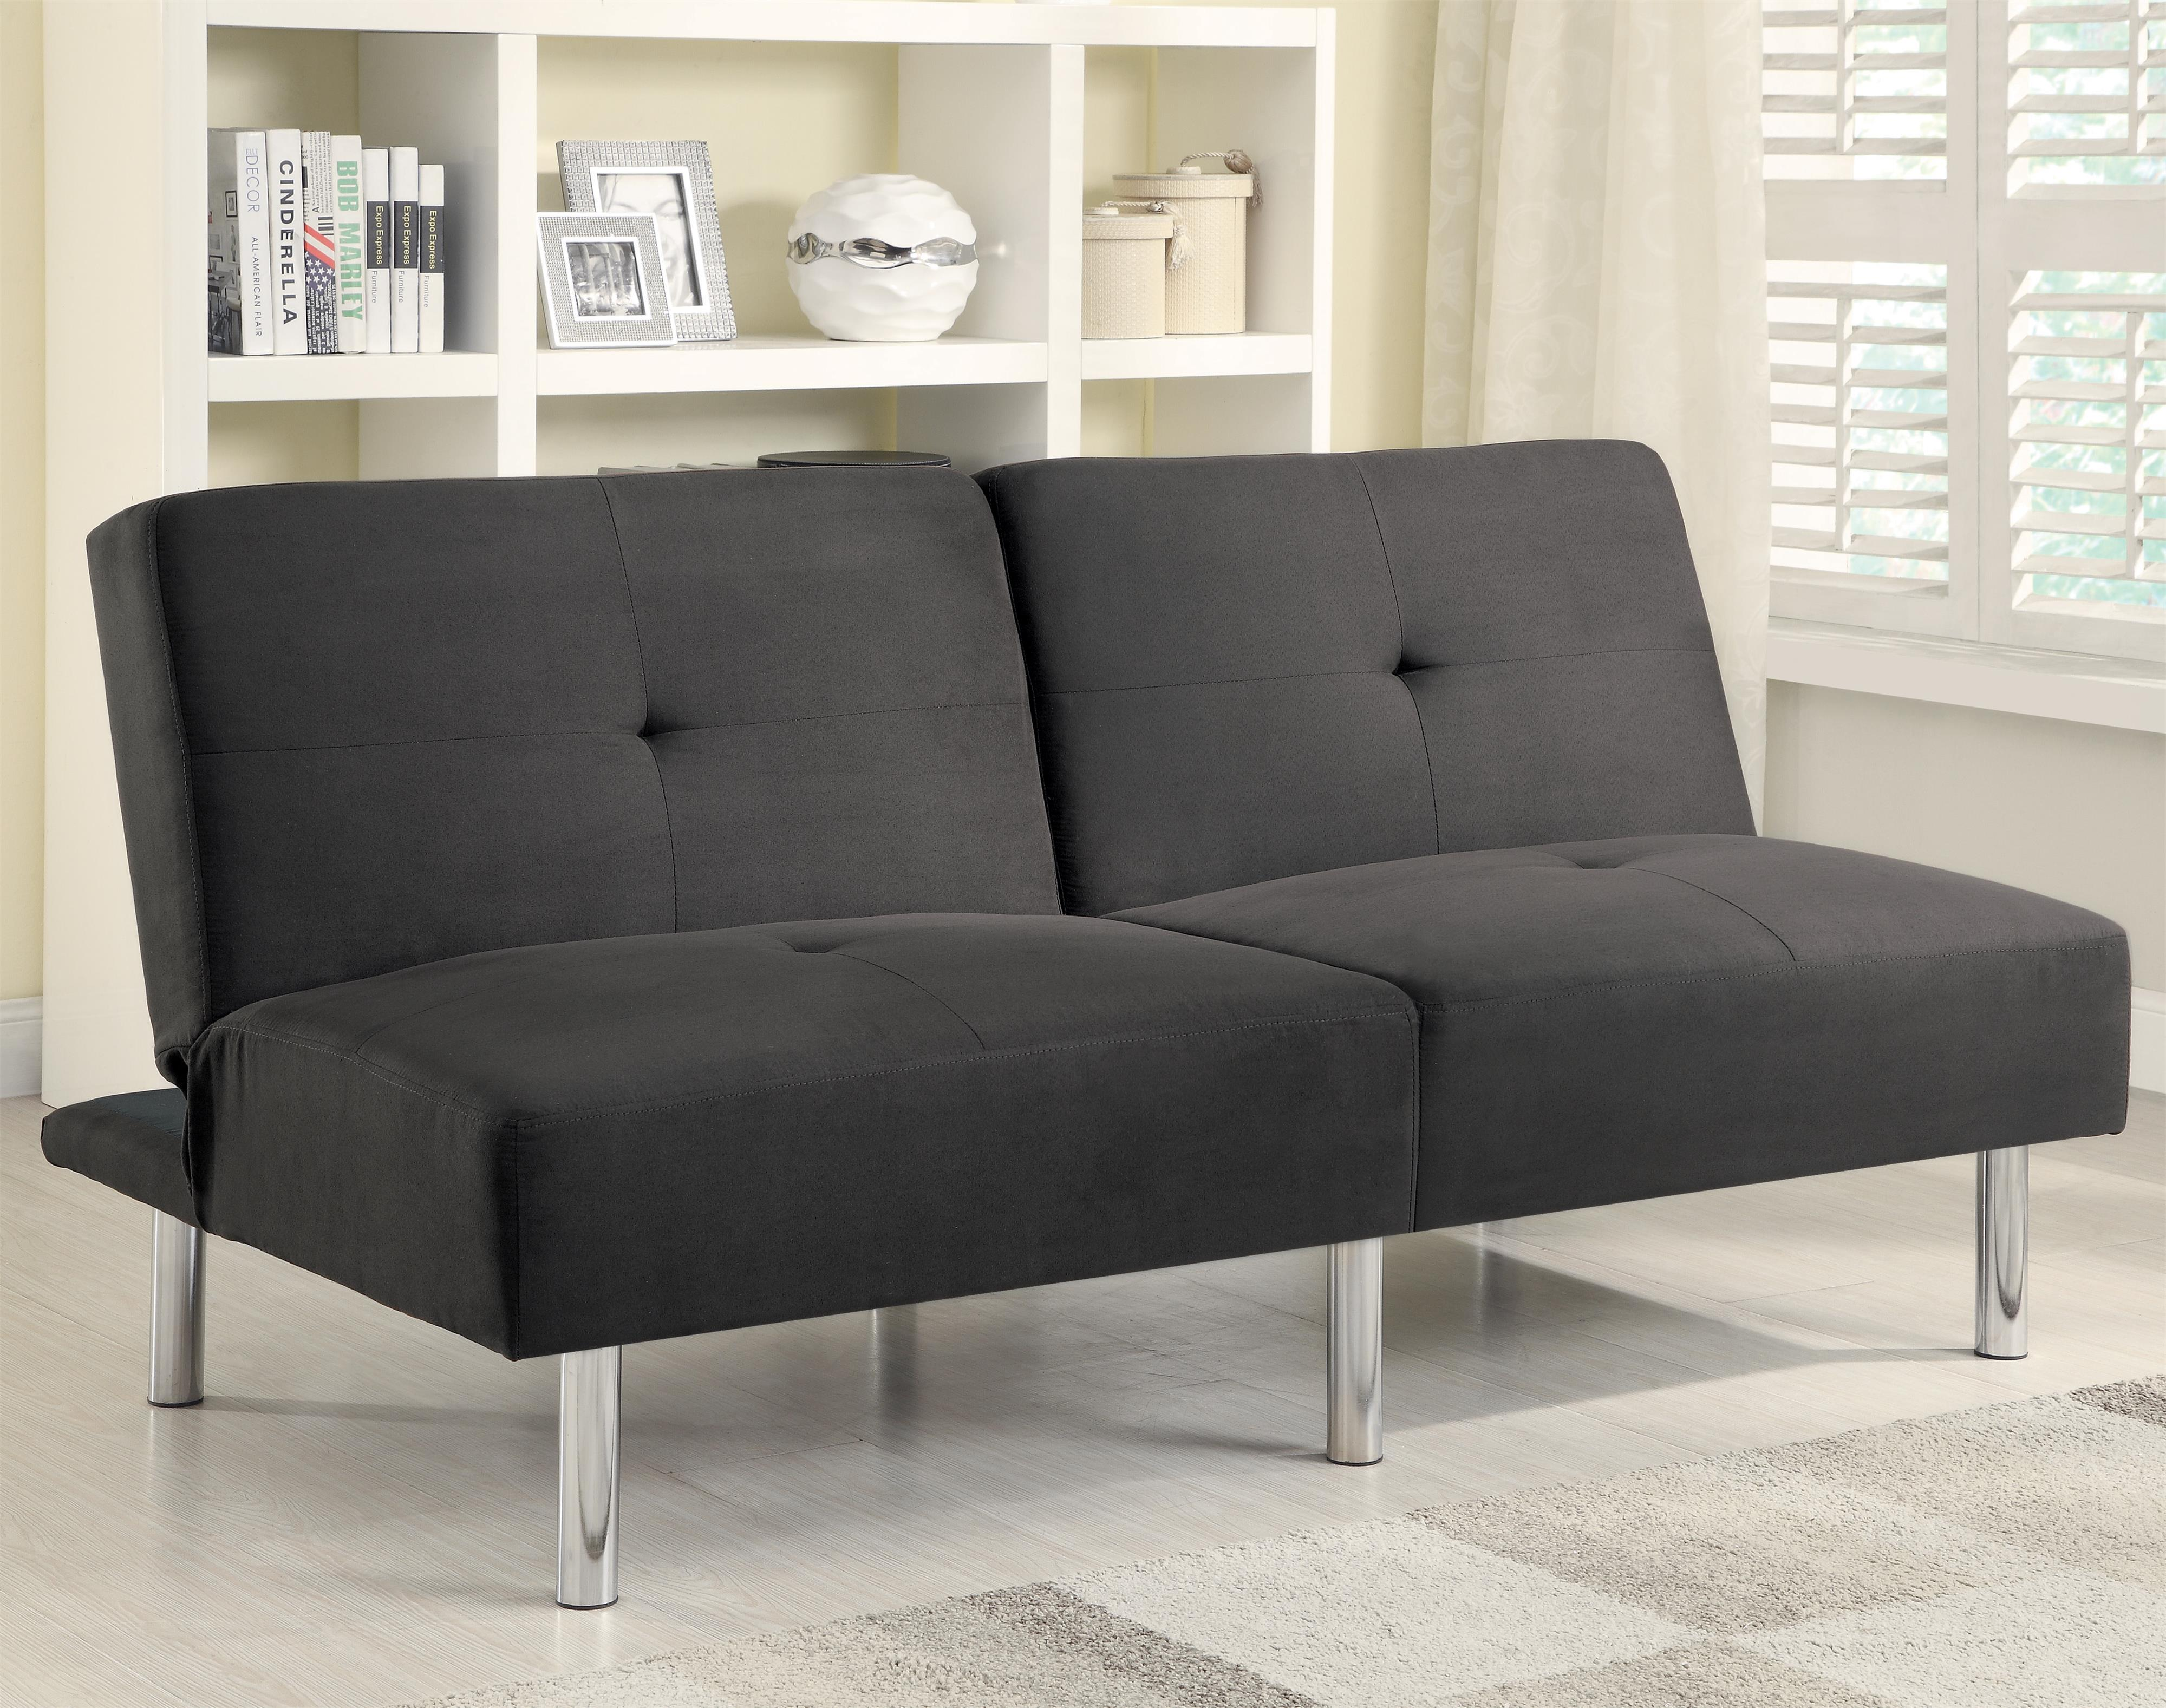 Contemporary microfiber sofa bed with split back